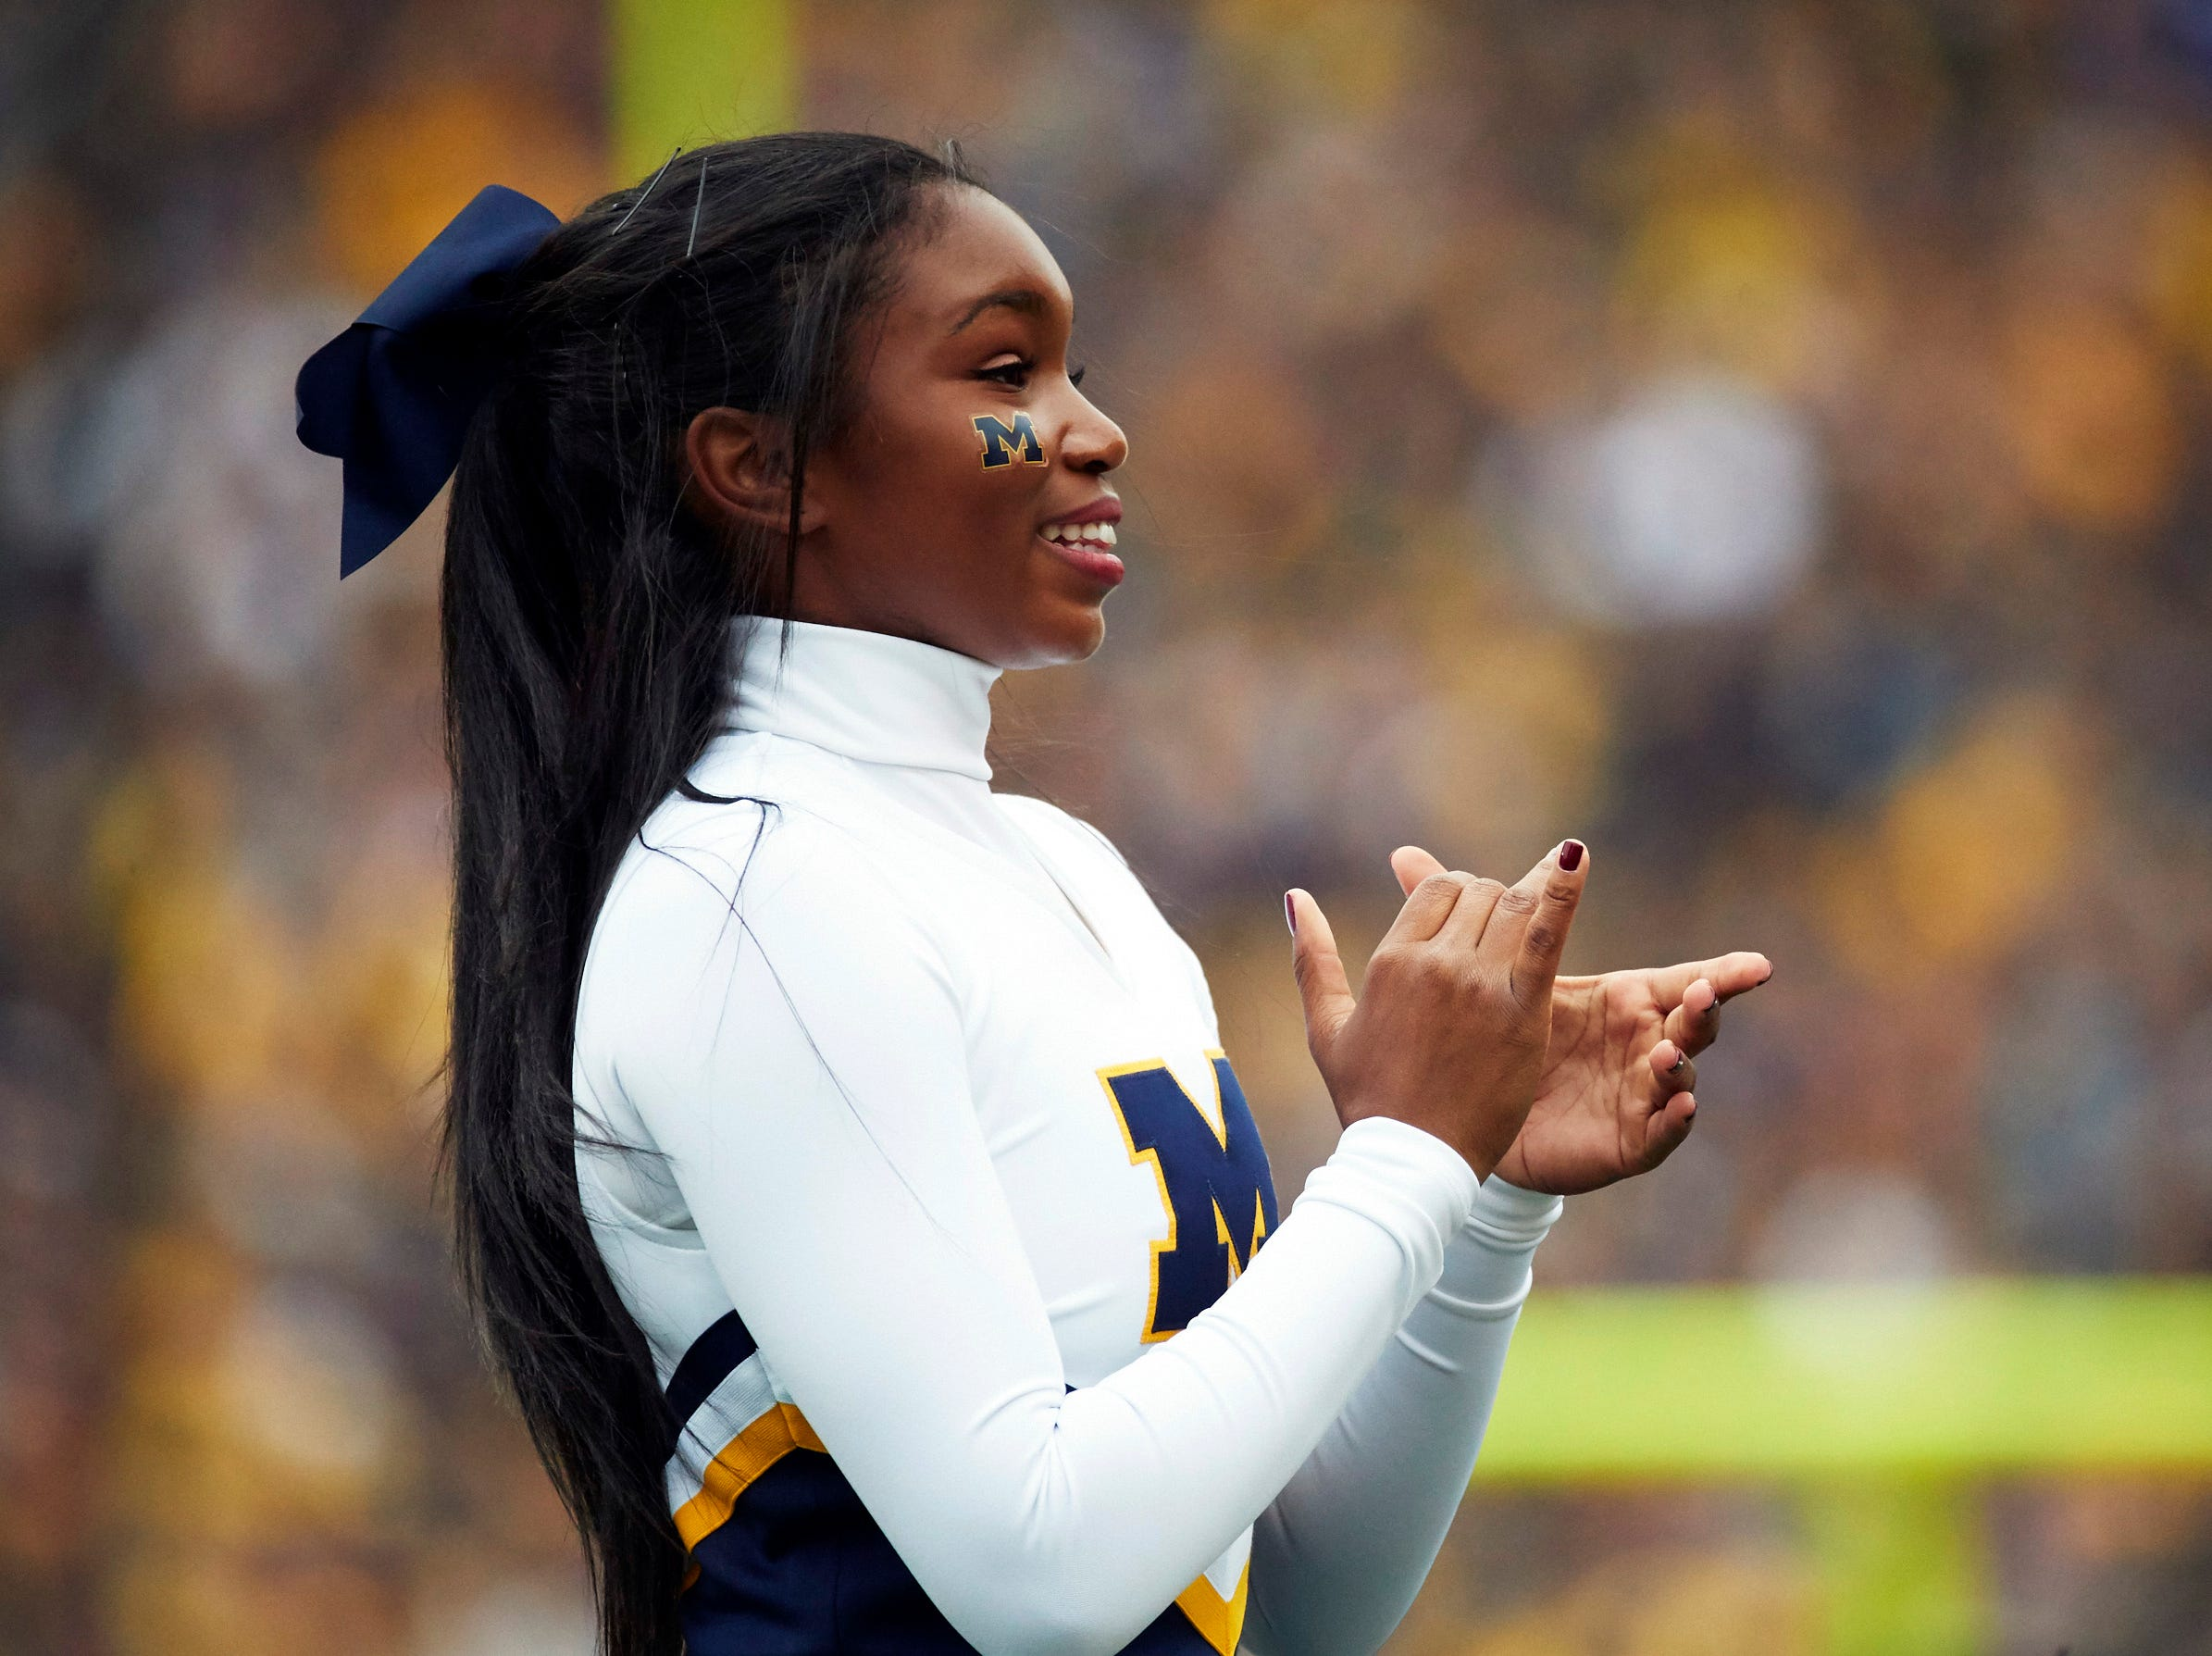 Week 2: A Michigan Wolverines cheerleader on the sideline in the first half against the Western Michigan Broncos.